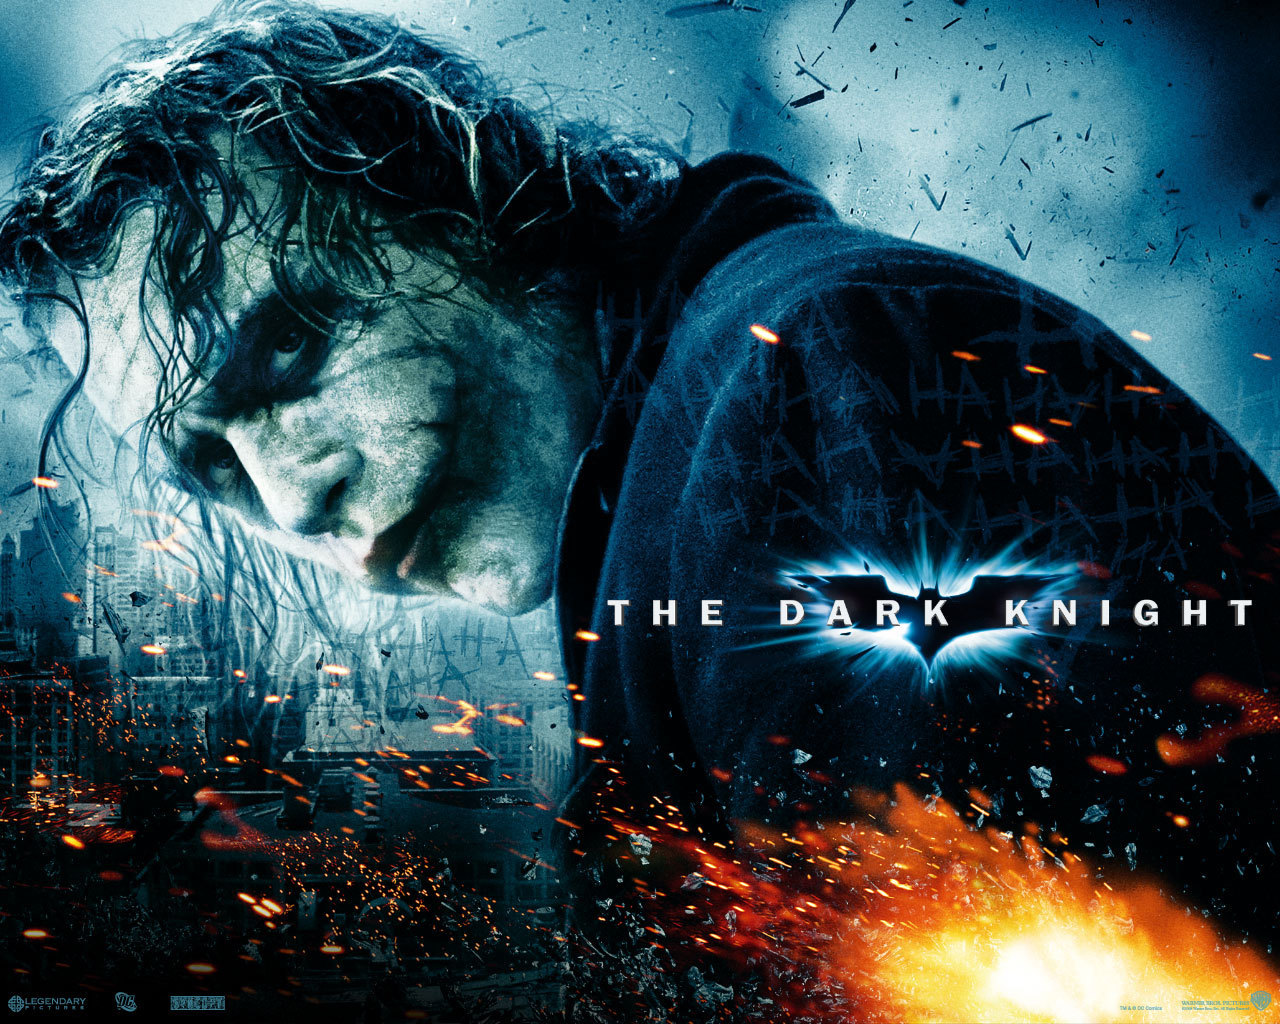 http://3.bp.blogspot.com/-tGfVbGiH9sM/UDI3MbexEqI/AAAAAAAAEdo/yxLqSIcnl98/s1600/batman-the-dark-knight-rises-wallpaper-joker-1.jpg